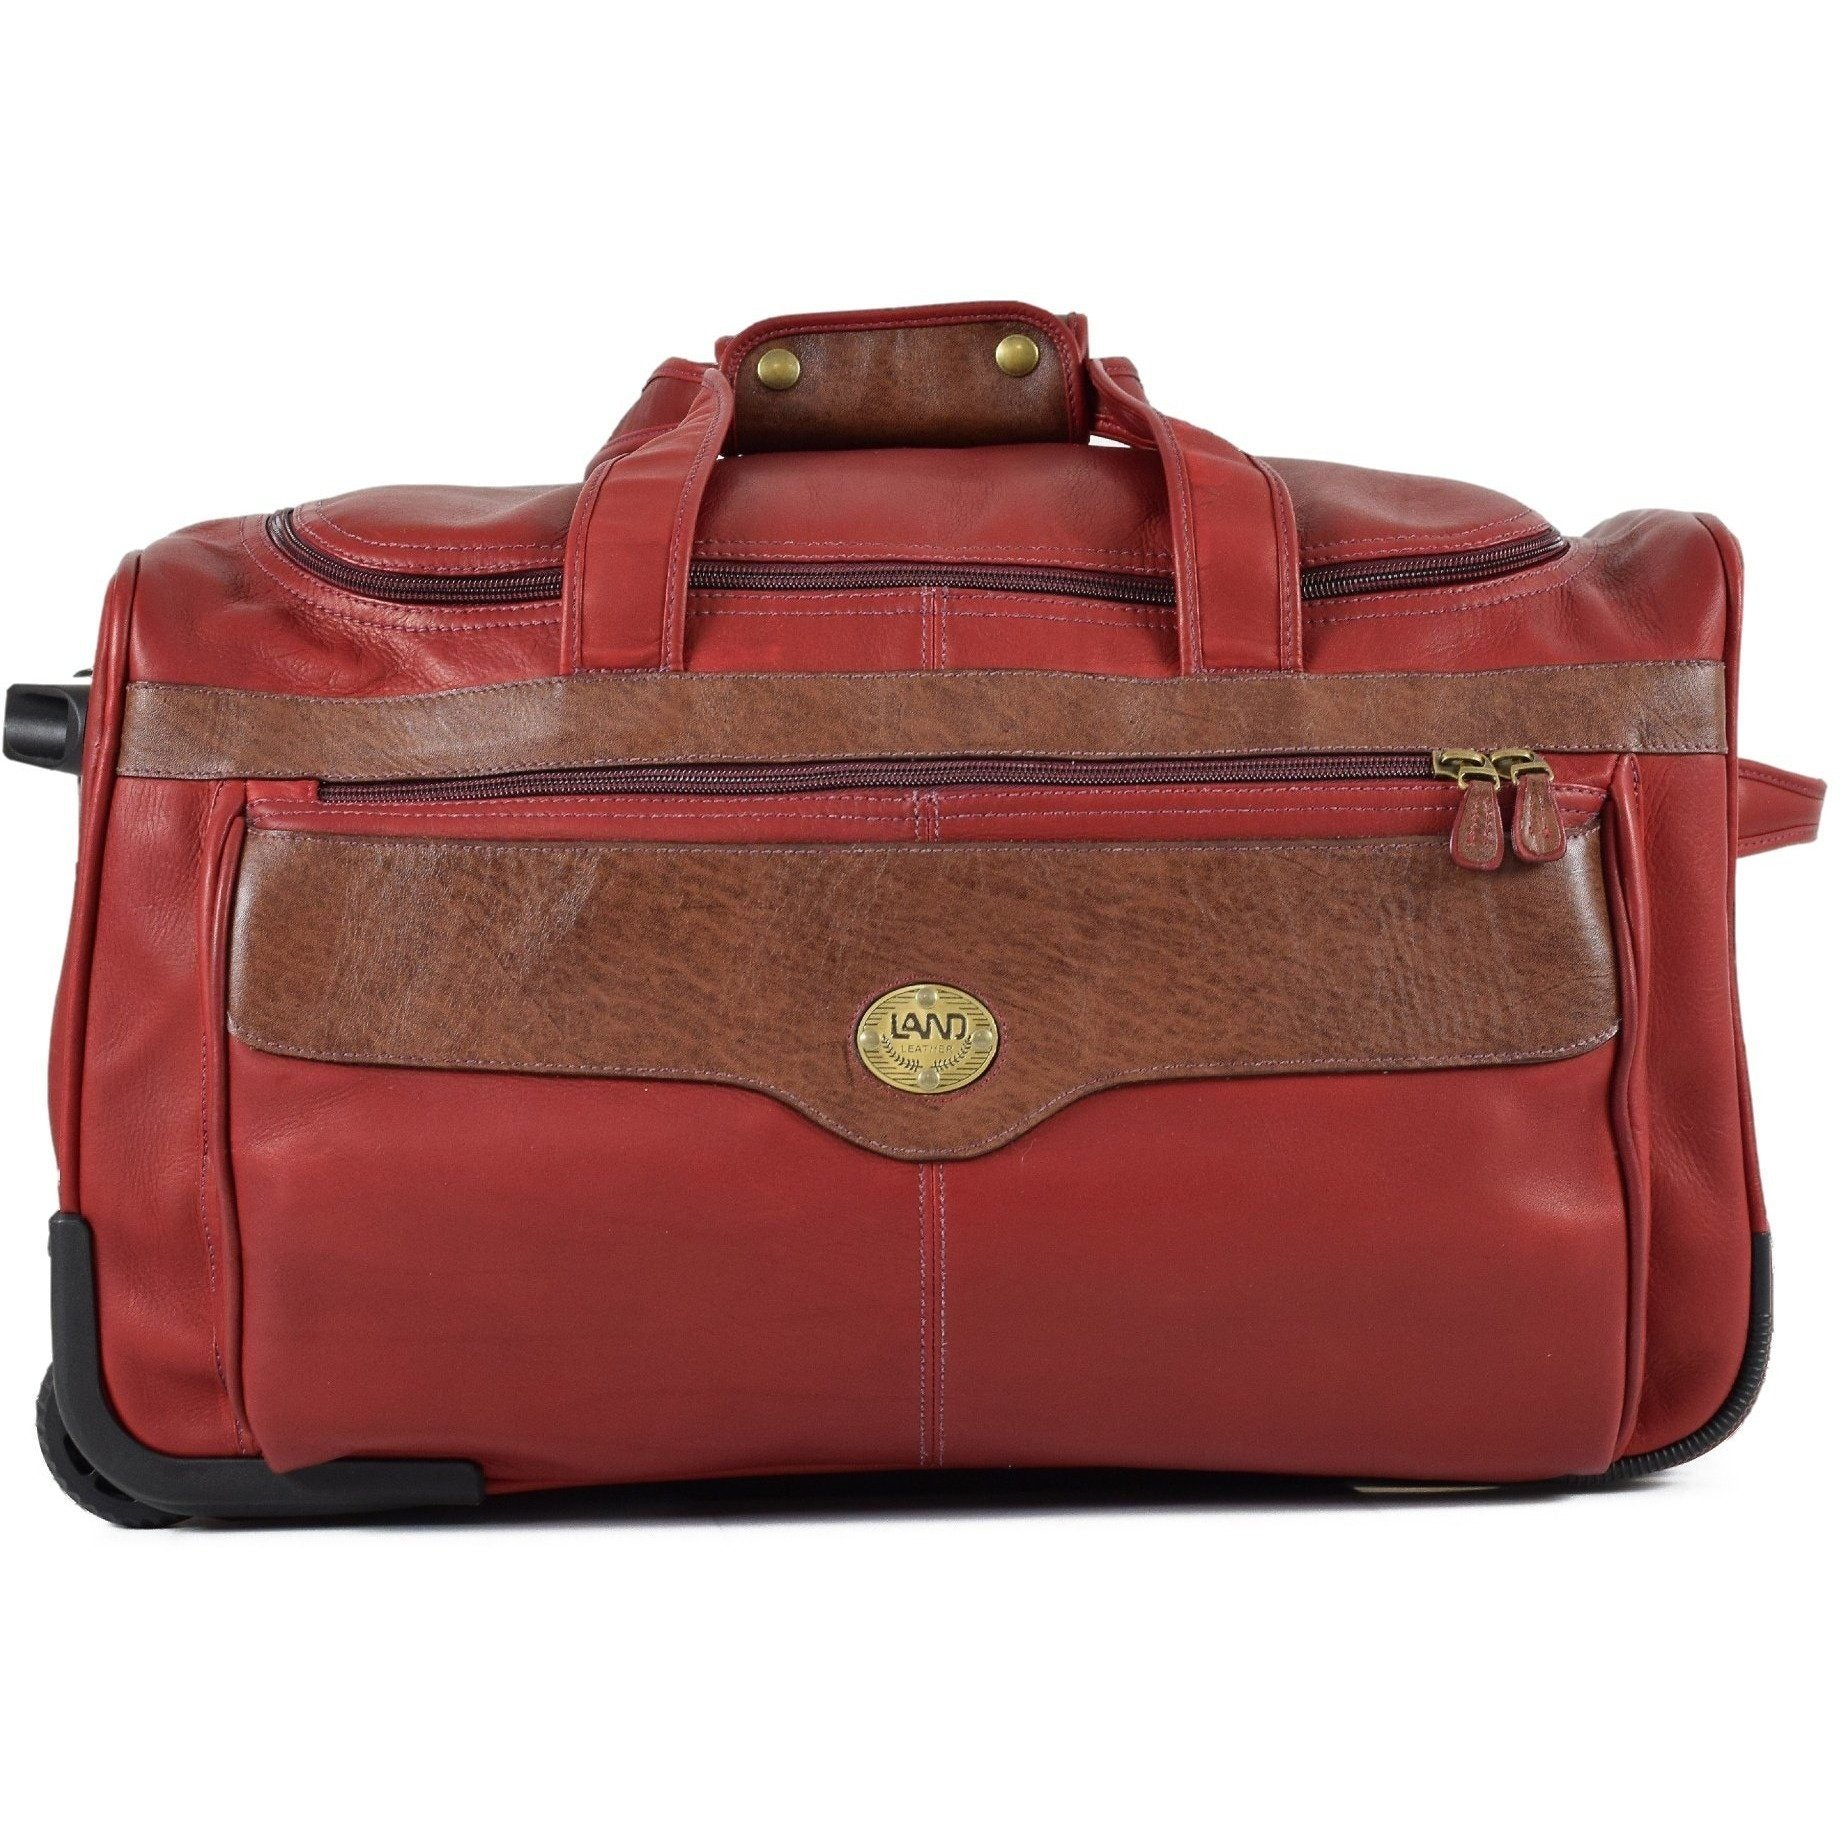 Anniversary Wheeled Duffel Bag // Backordered, Duffel Bag | LAND Leather